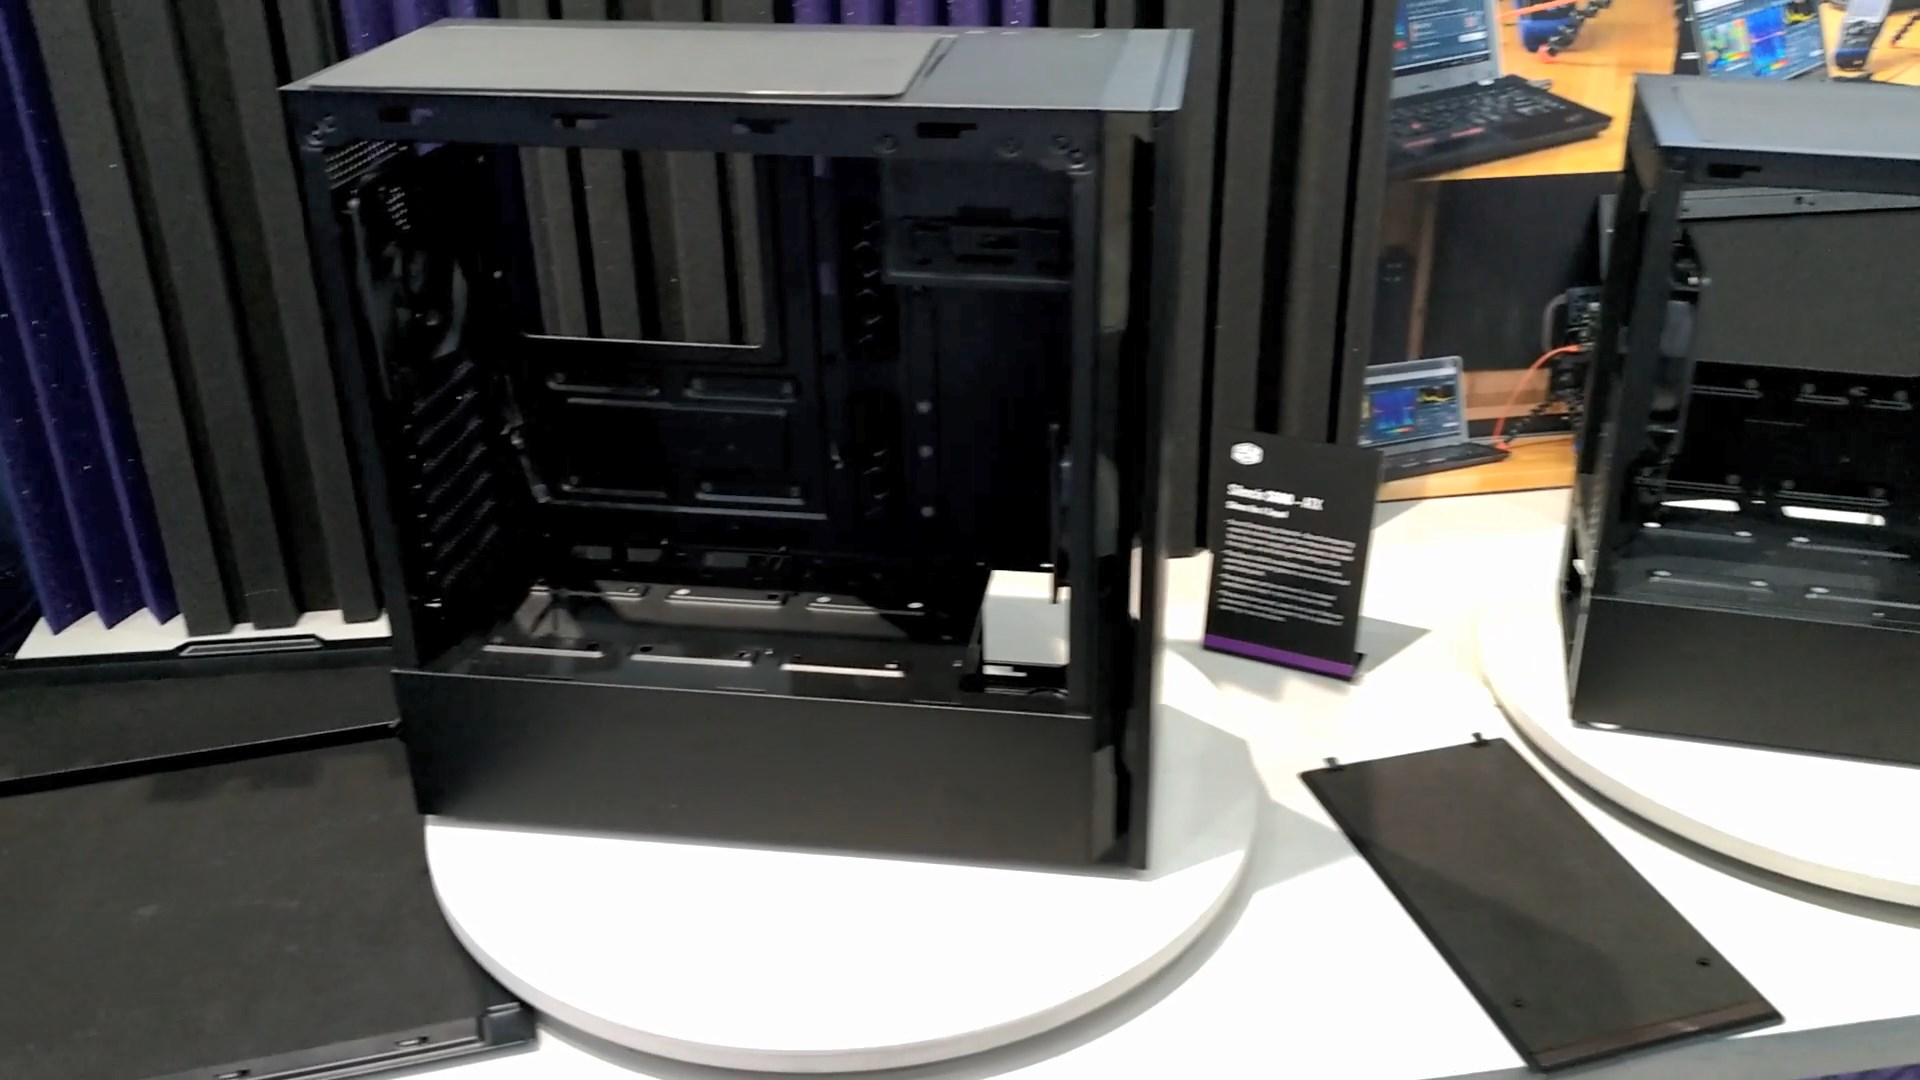 Cooler Master Silencio S400 and S600 Casings 1